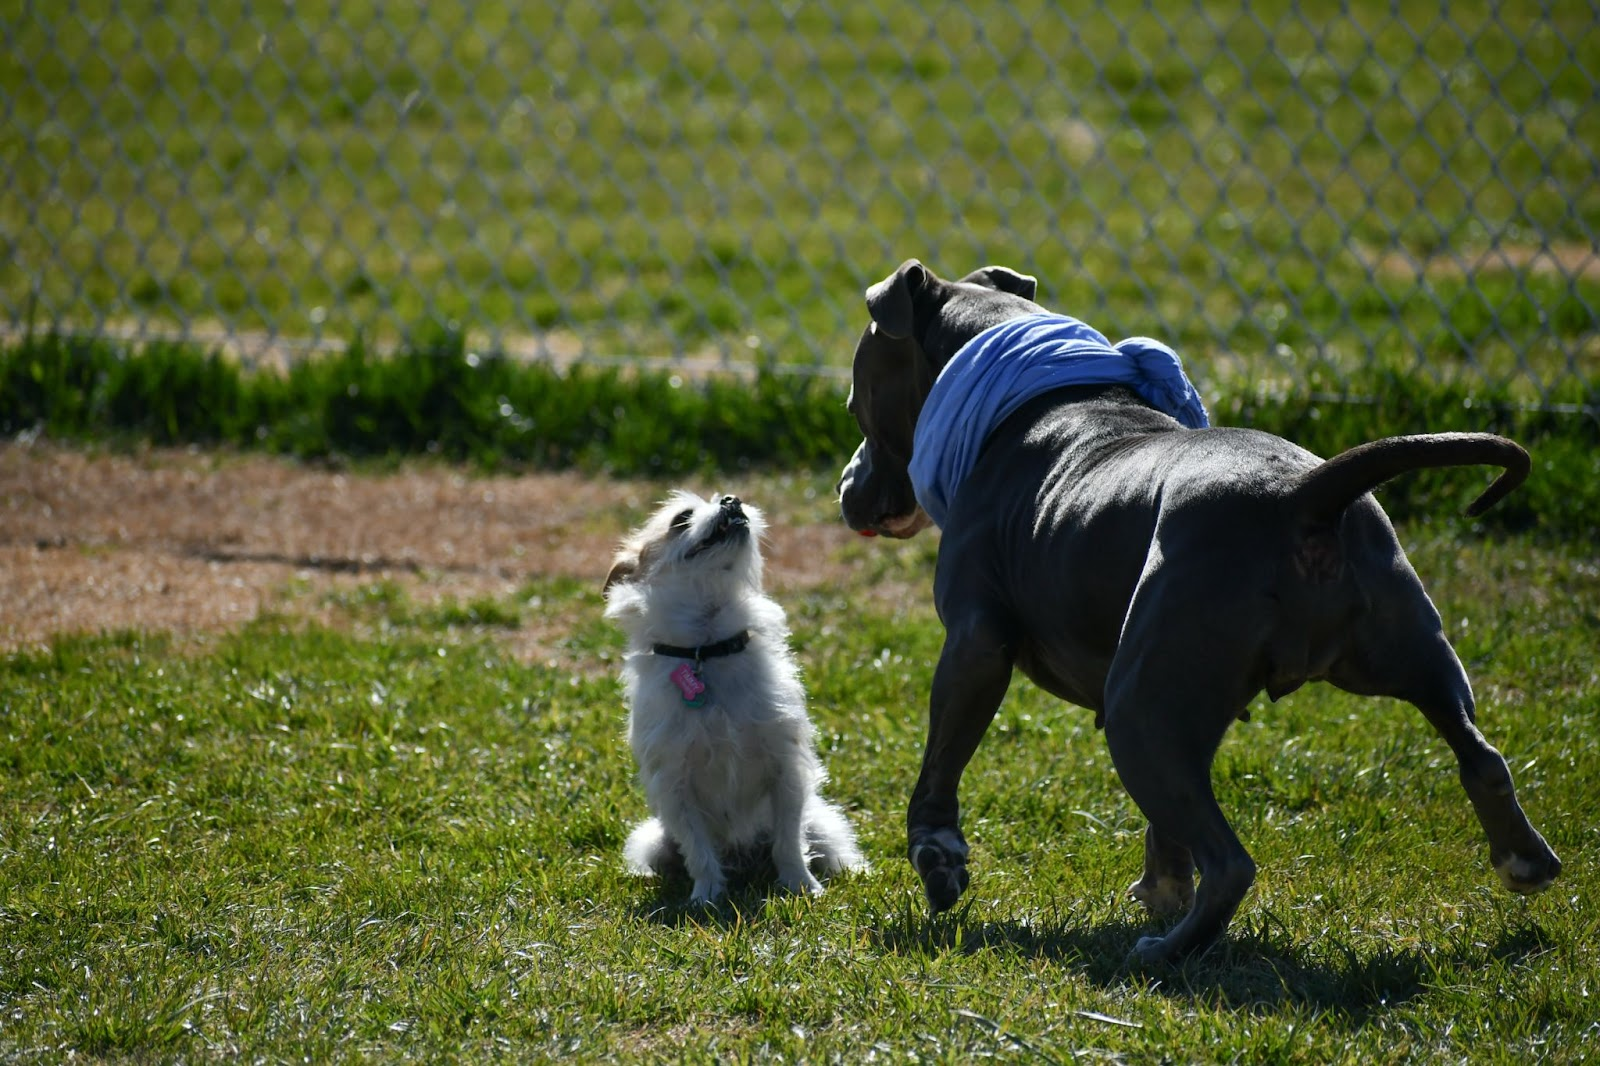 small and large dog greeting each other in dog park